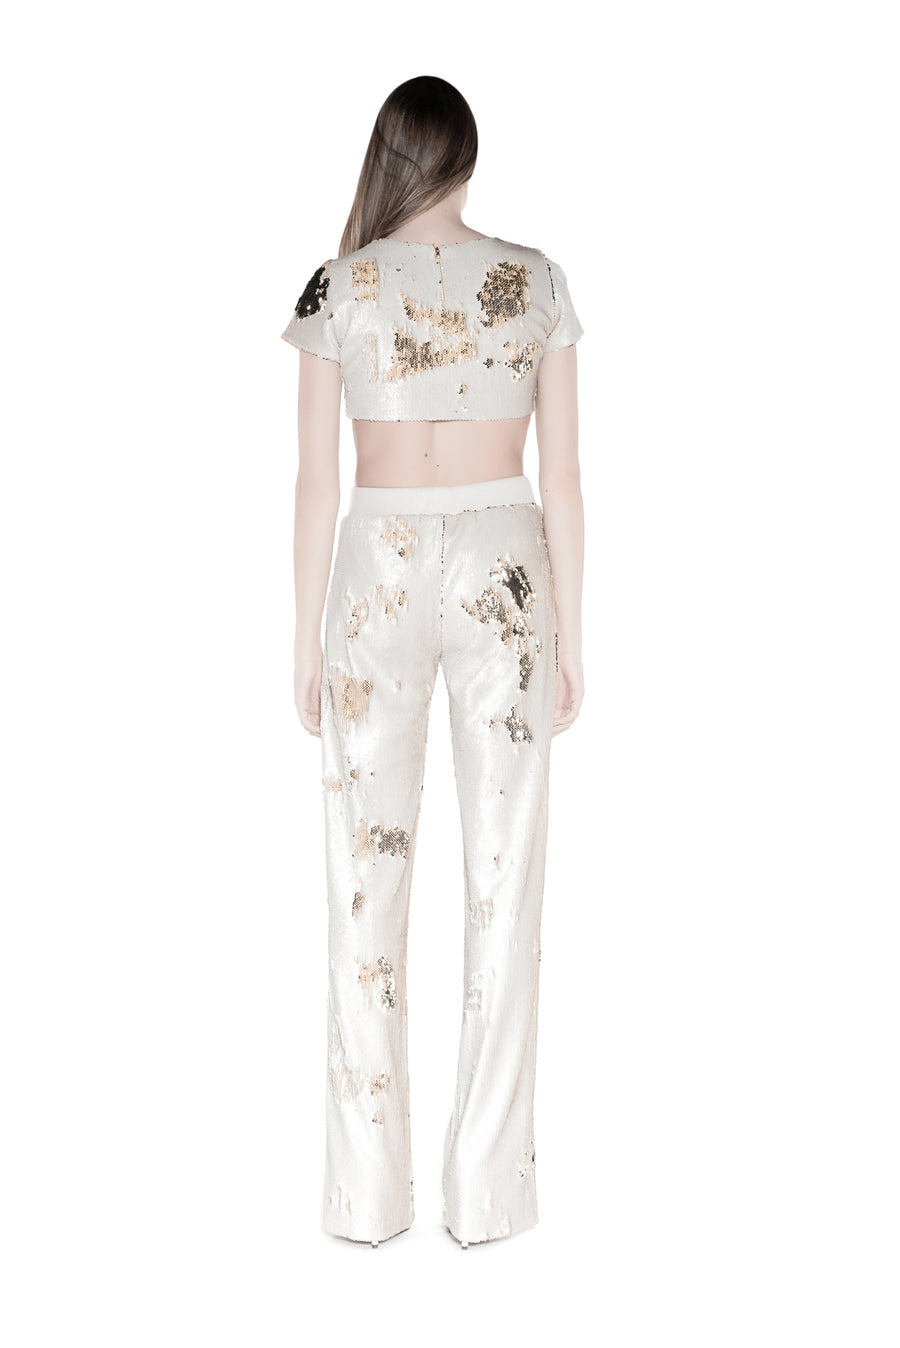 NOMAD VII - DAKOTA SEQUIN CROP TOP - NOMAD VII X ANNE BOWEN